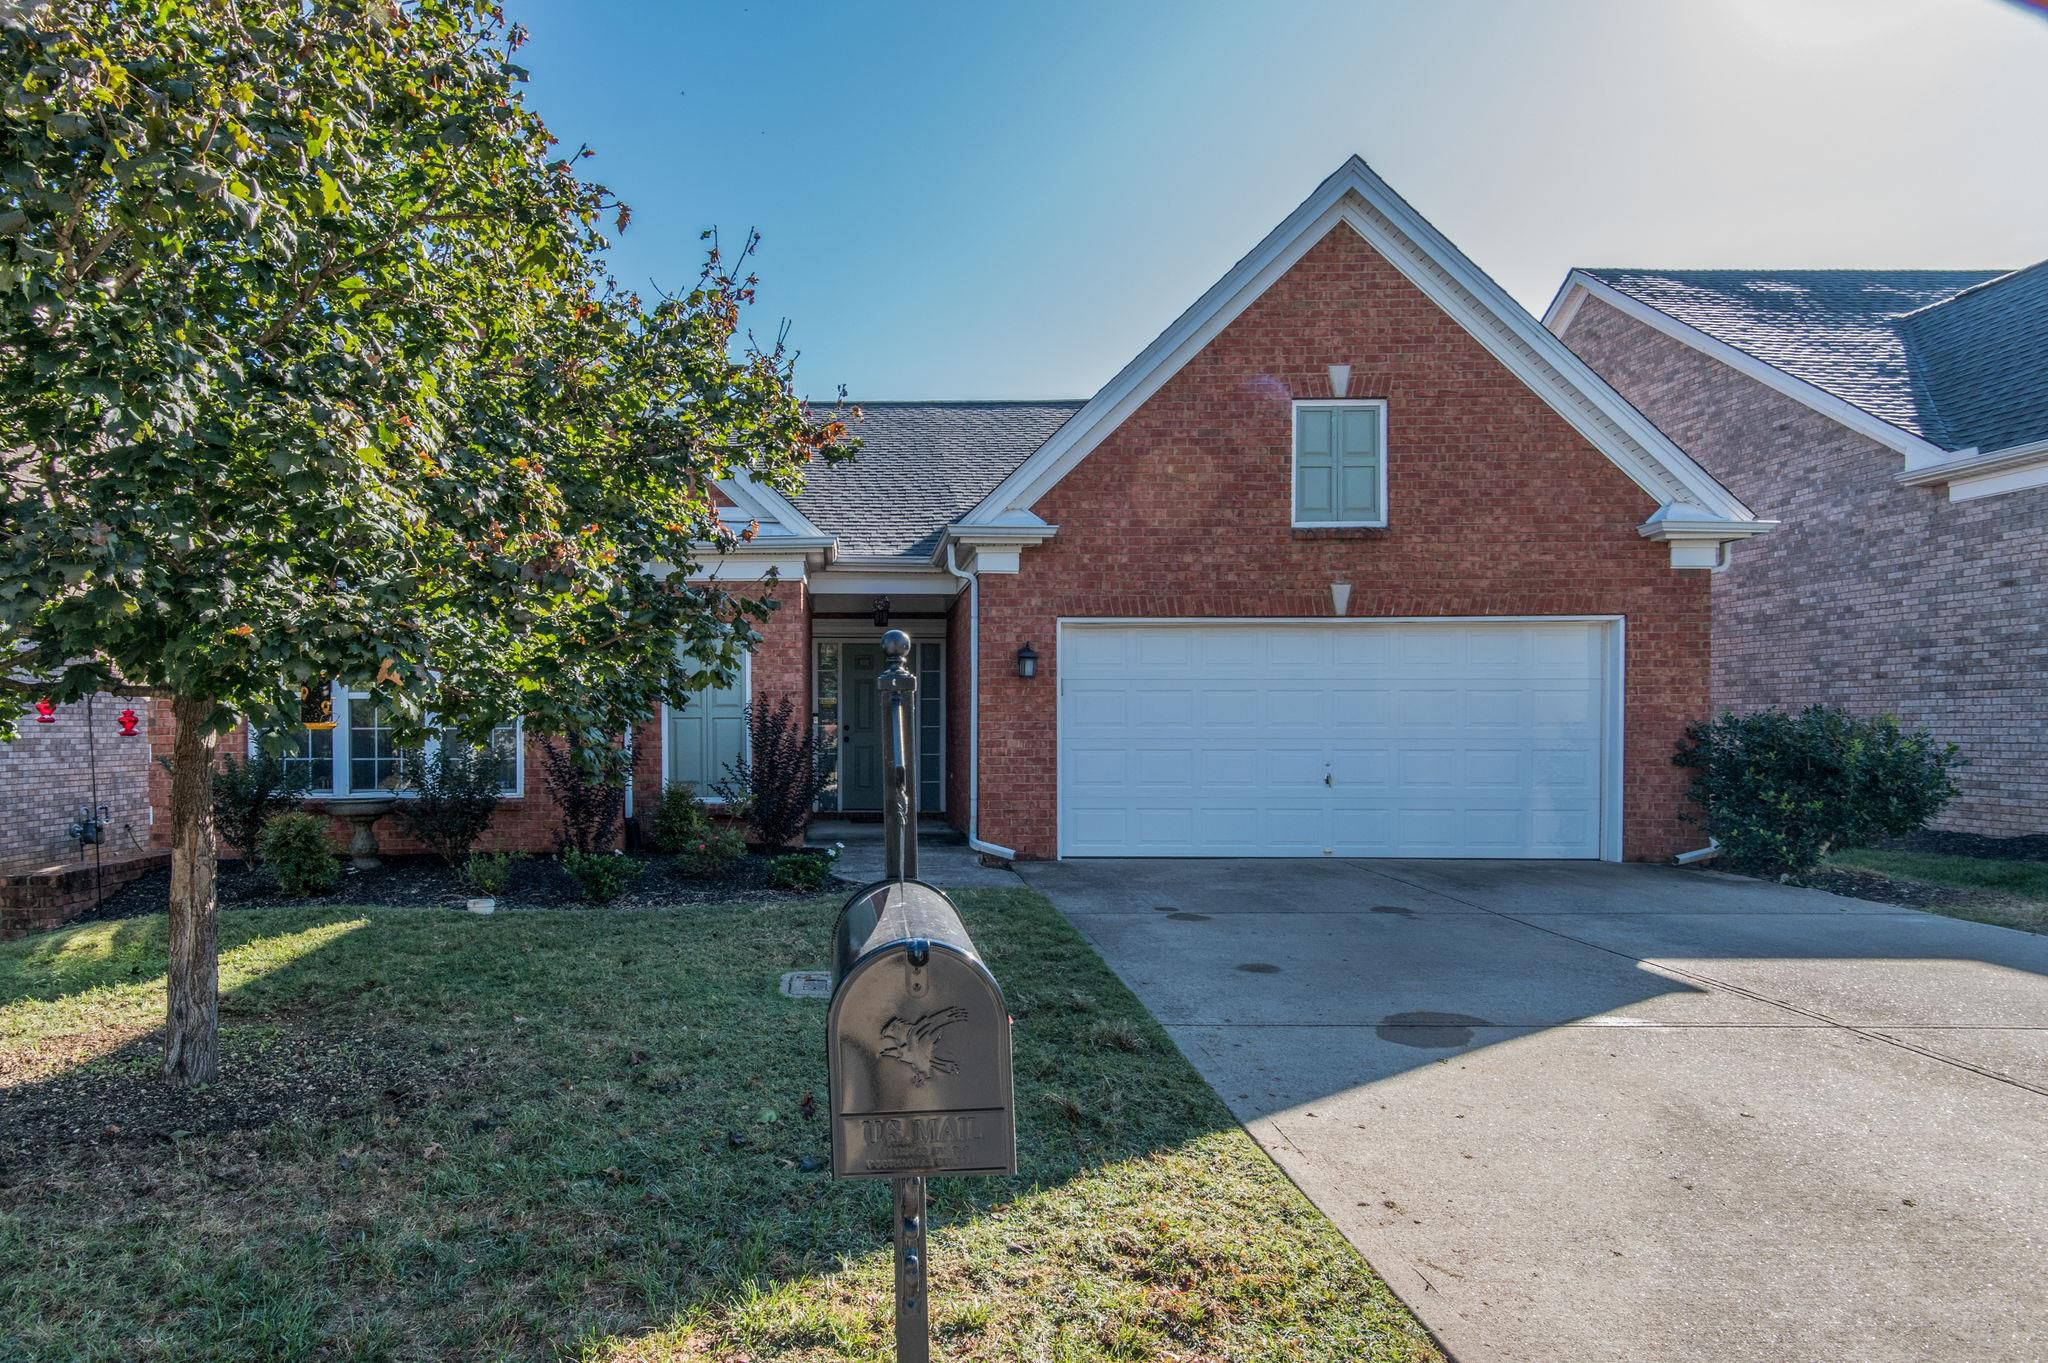 Chestnut Springs Homes For Sale In Brentwood Tn